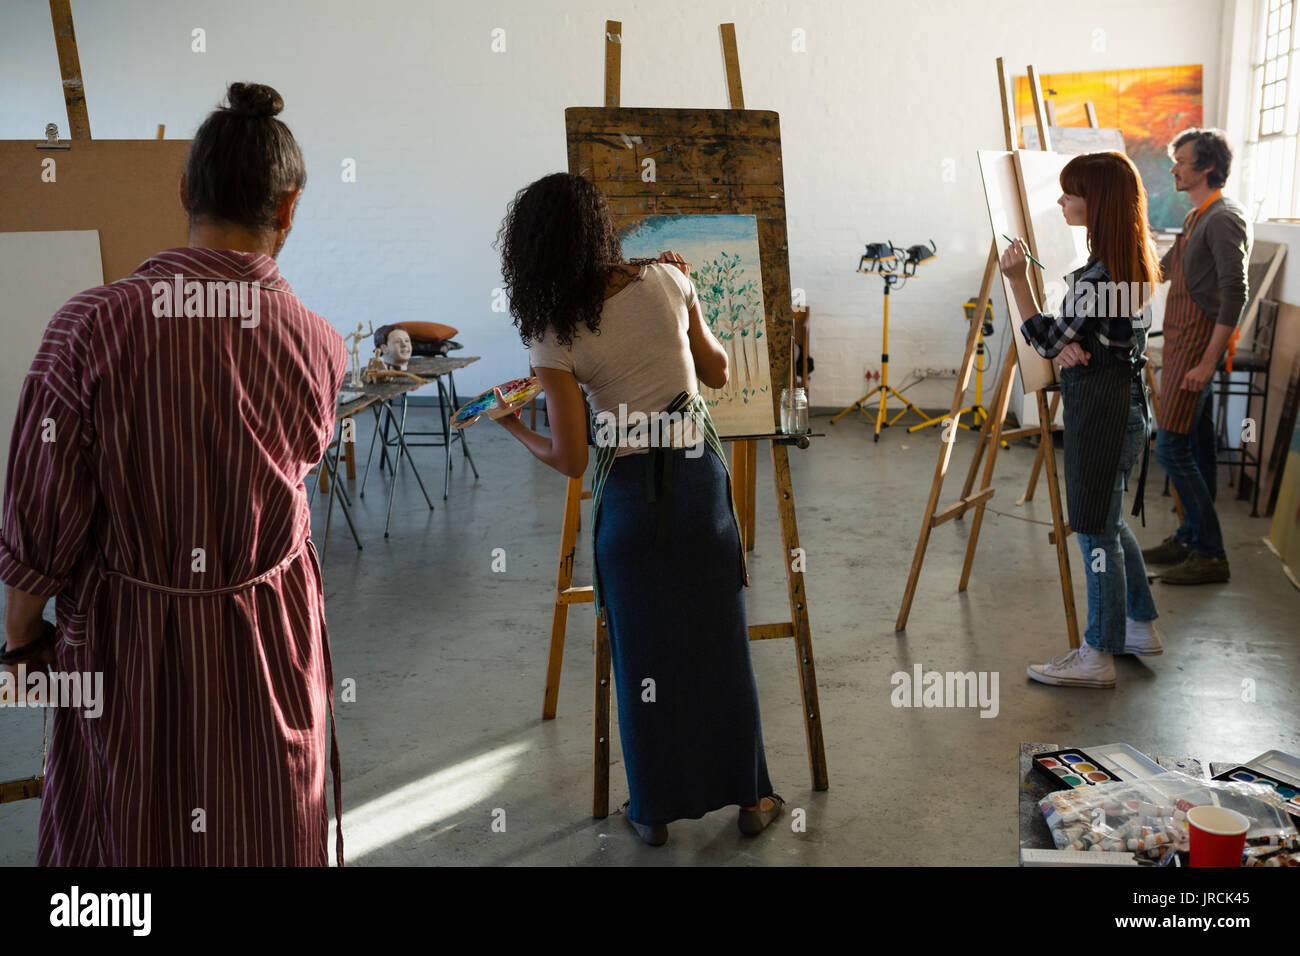 Adult students painting on artists canvas in art class - Stock Image